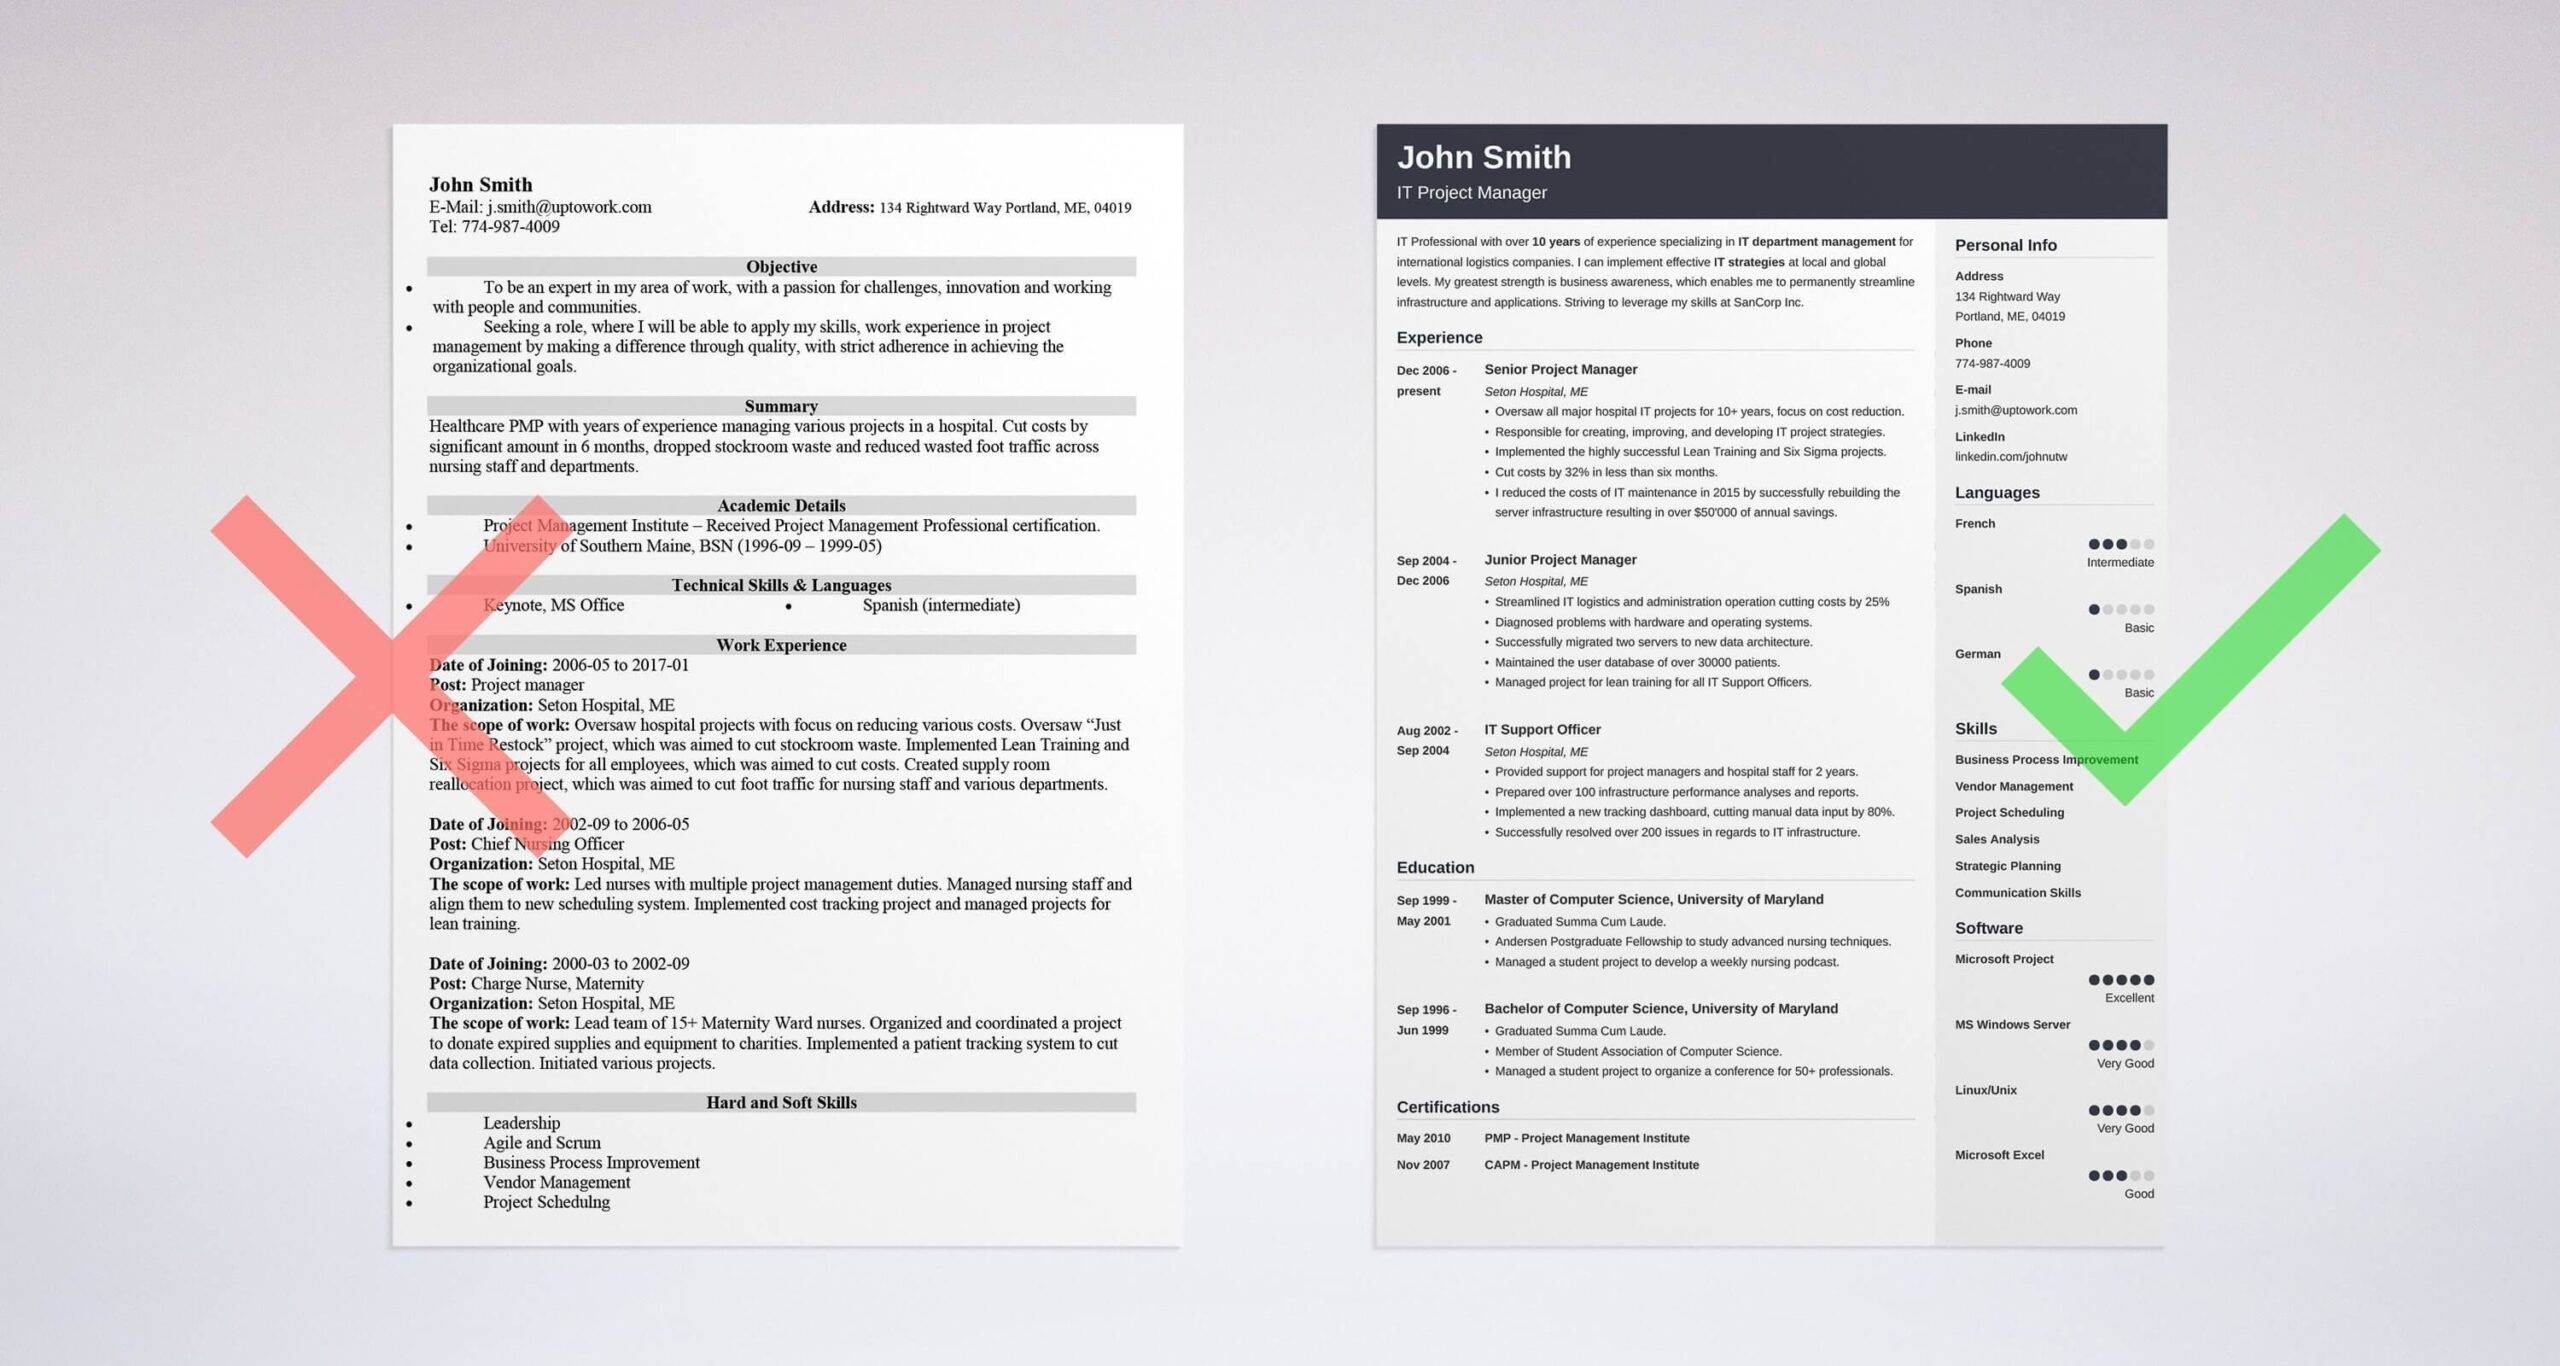 best project manager resume examples template guide program management bullets makeover Resume Program Management Resume Bullets